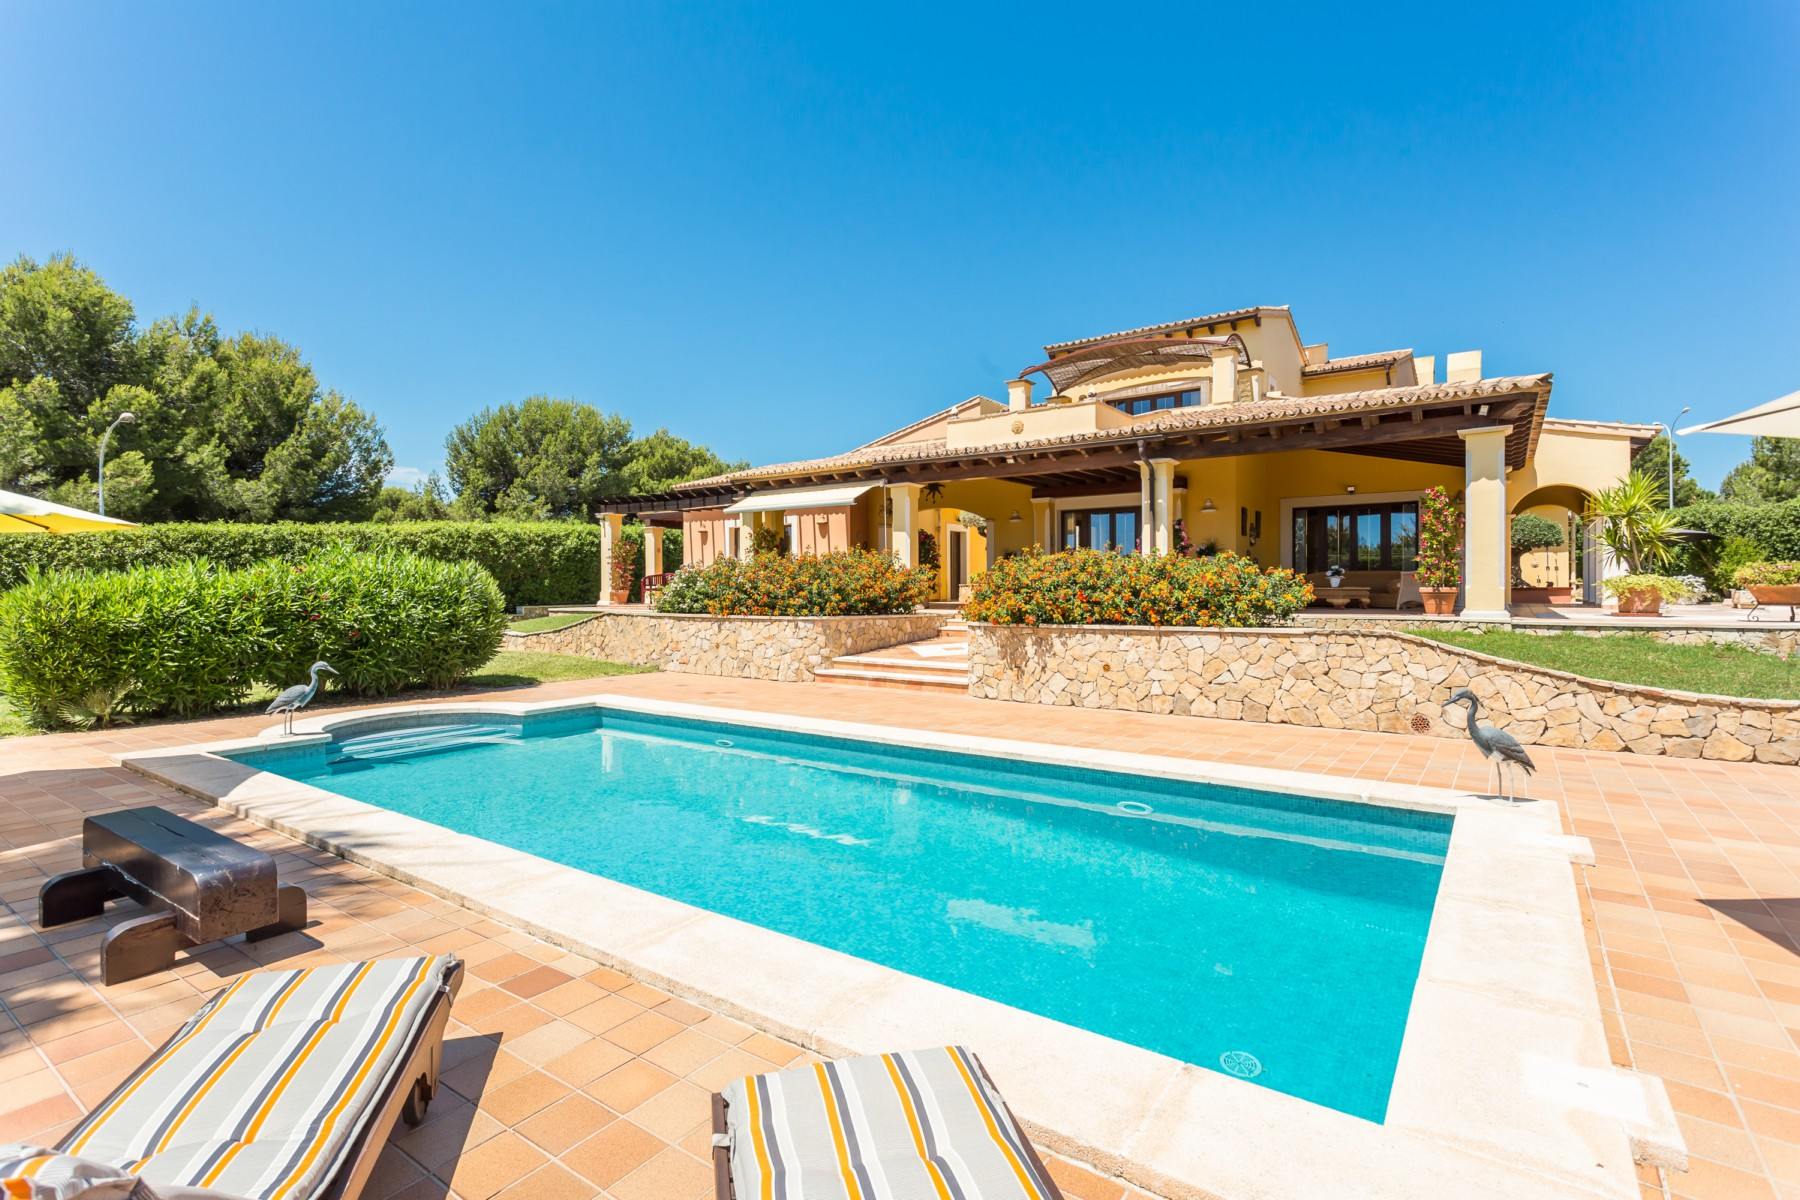 Single Family Home for Sale at Lovely property between golf course and the sea Nova Santa Ponsa, Mallorca, Spain